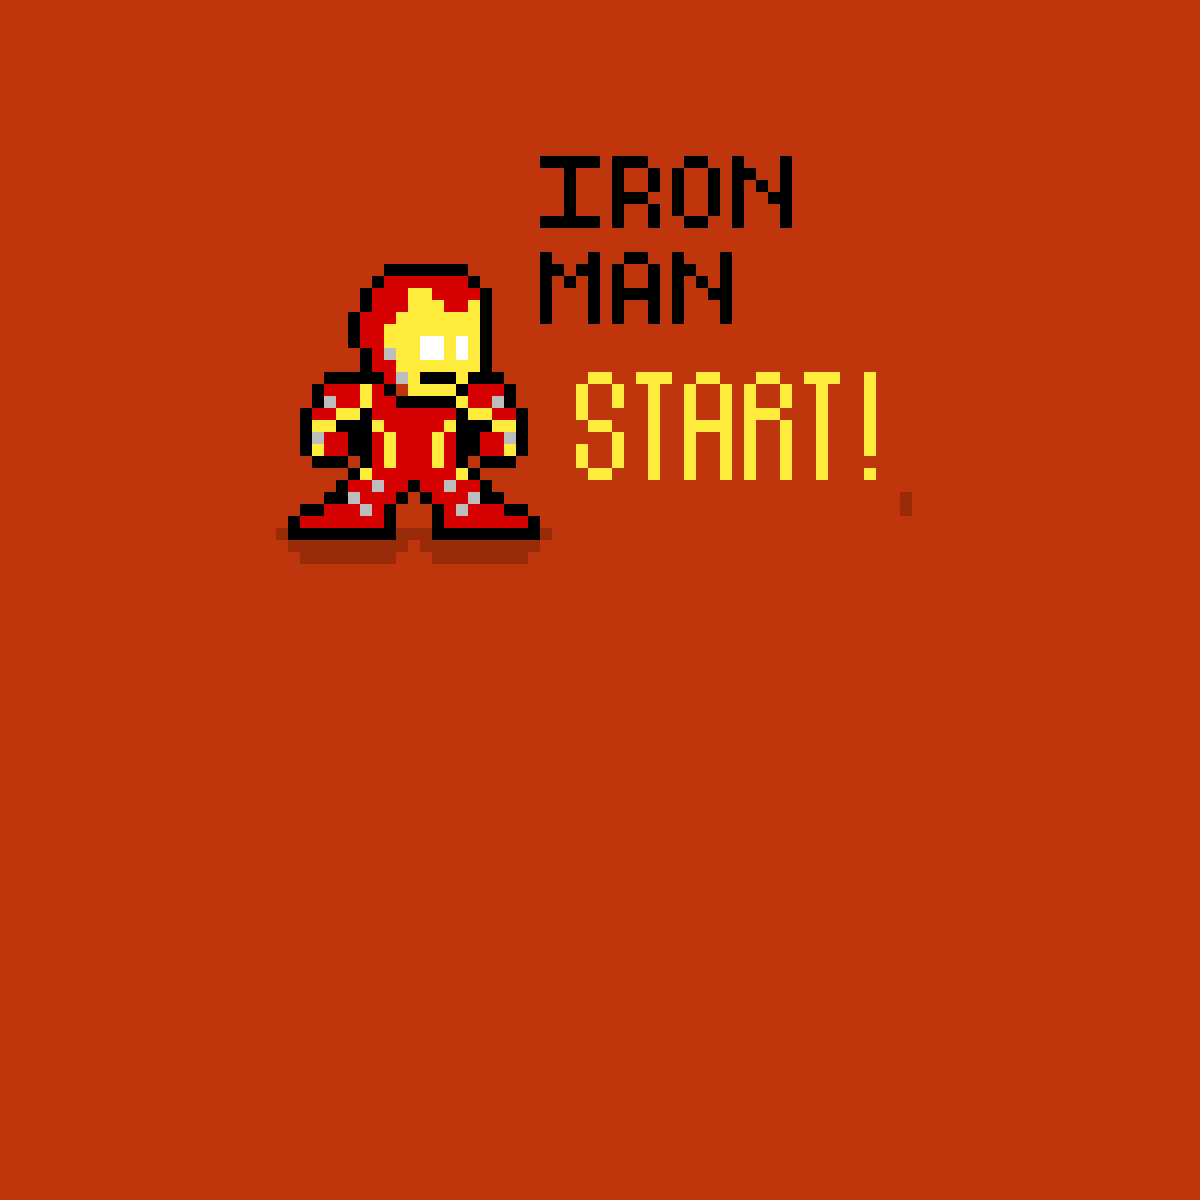 Iron man sprite by TheDestinedOne